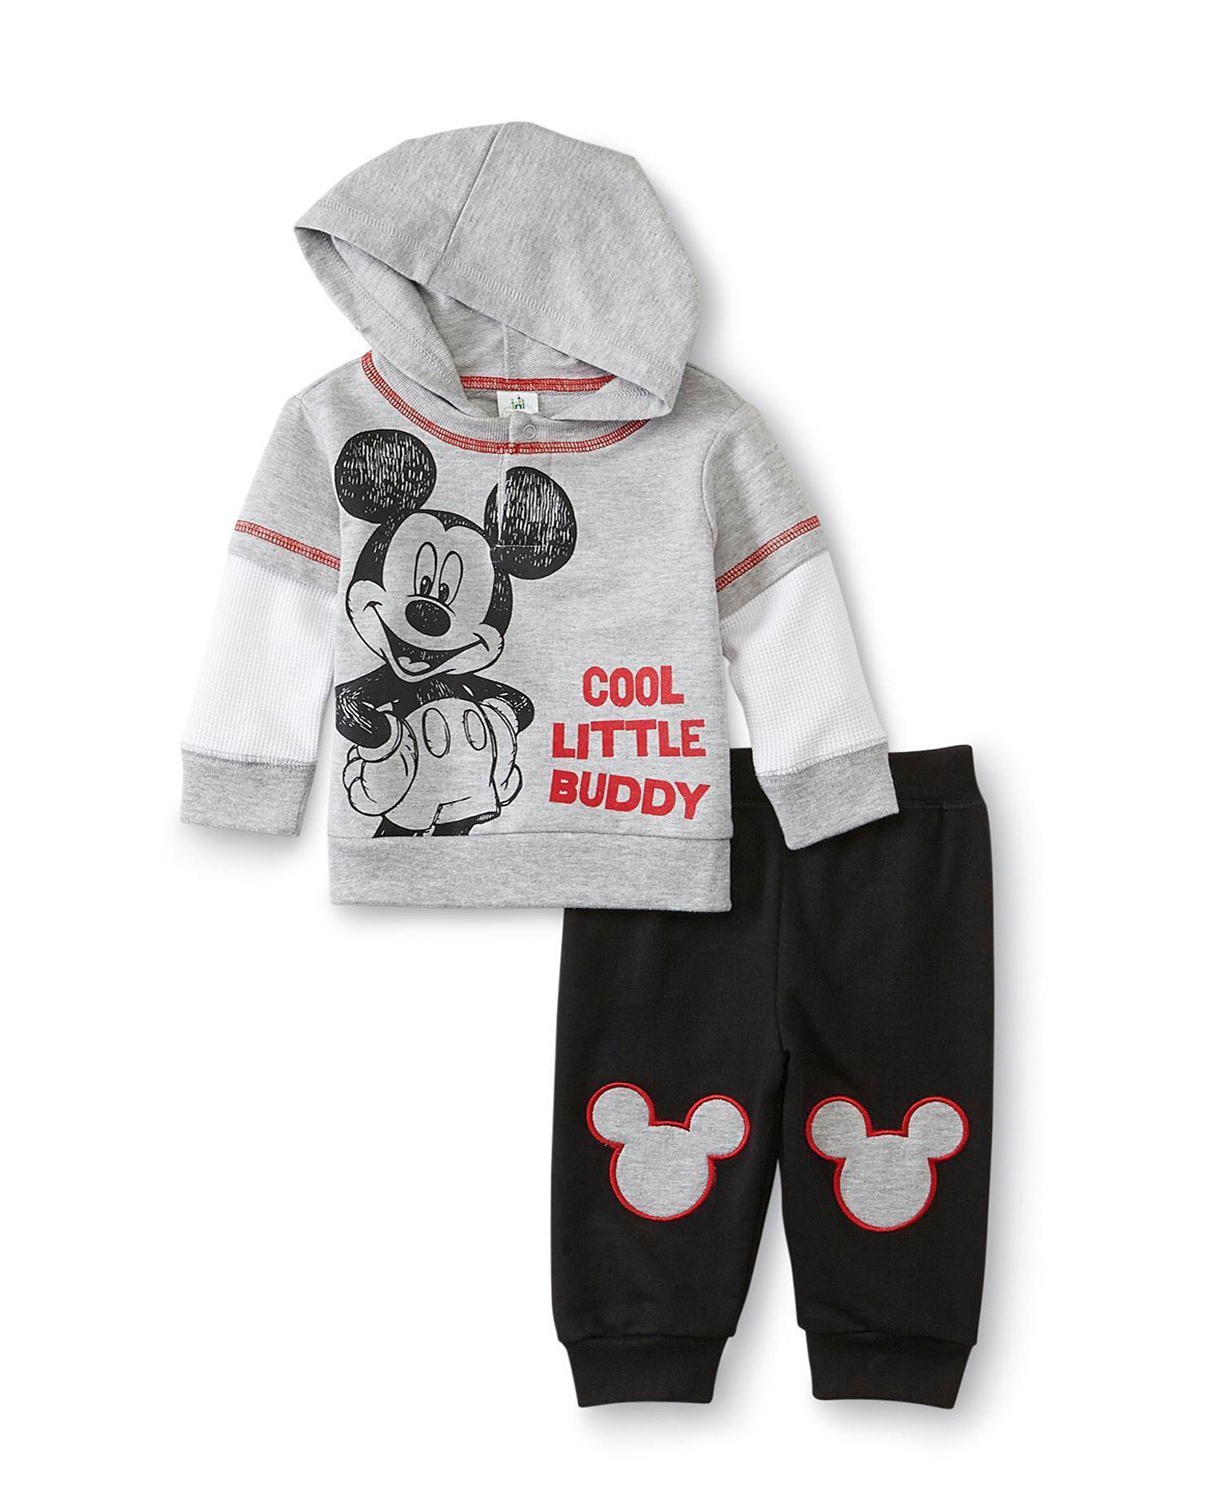 Baby Newborn Unisex Clothes Disney Baby Hoodies Mickey Mouse Sweatpants Set Baby